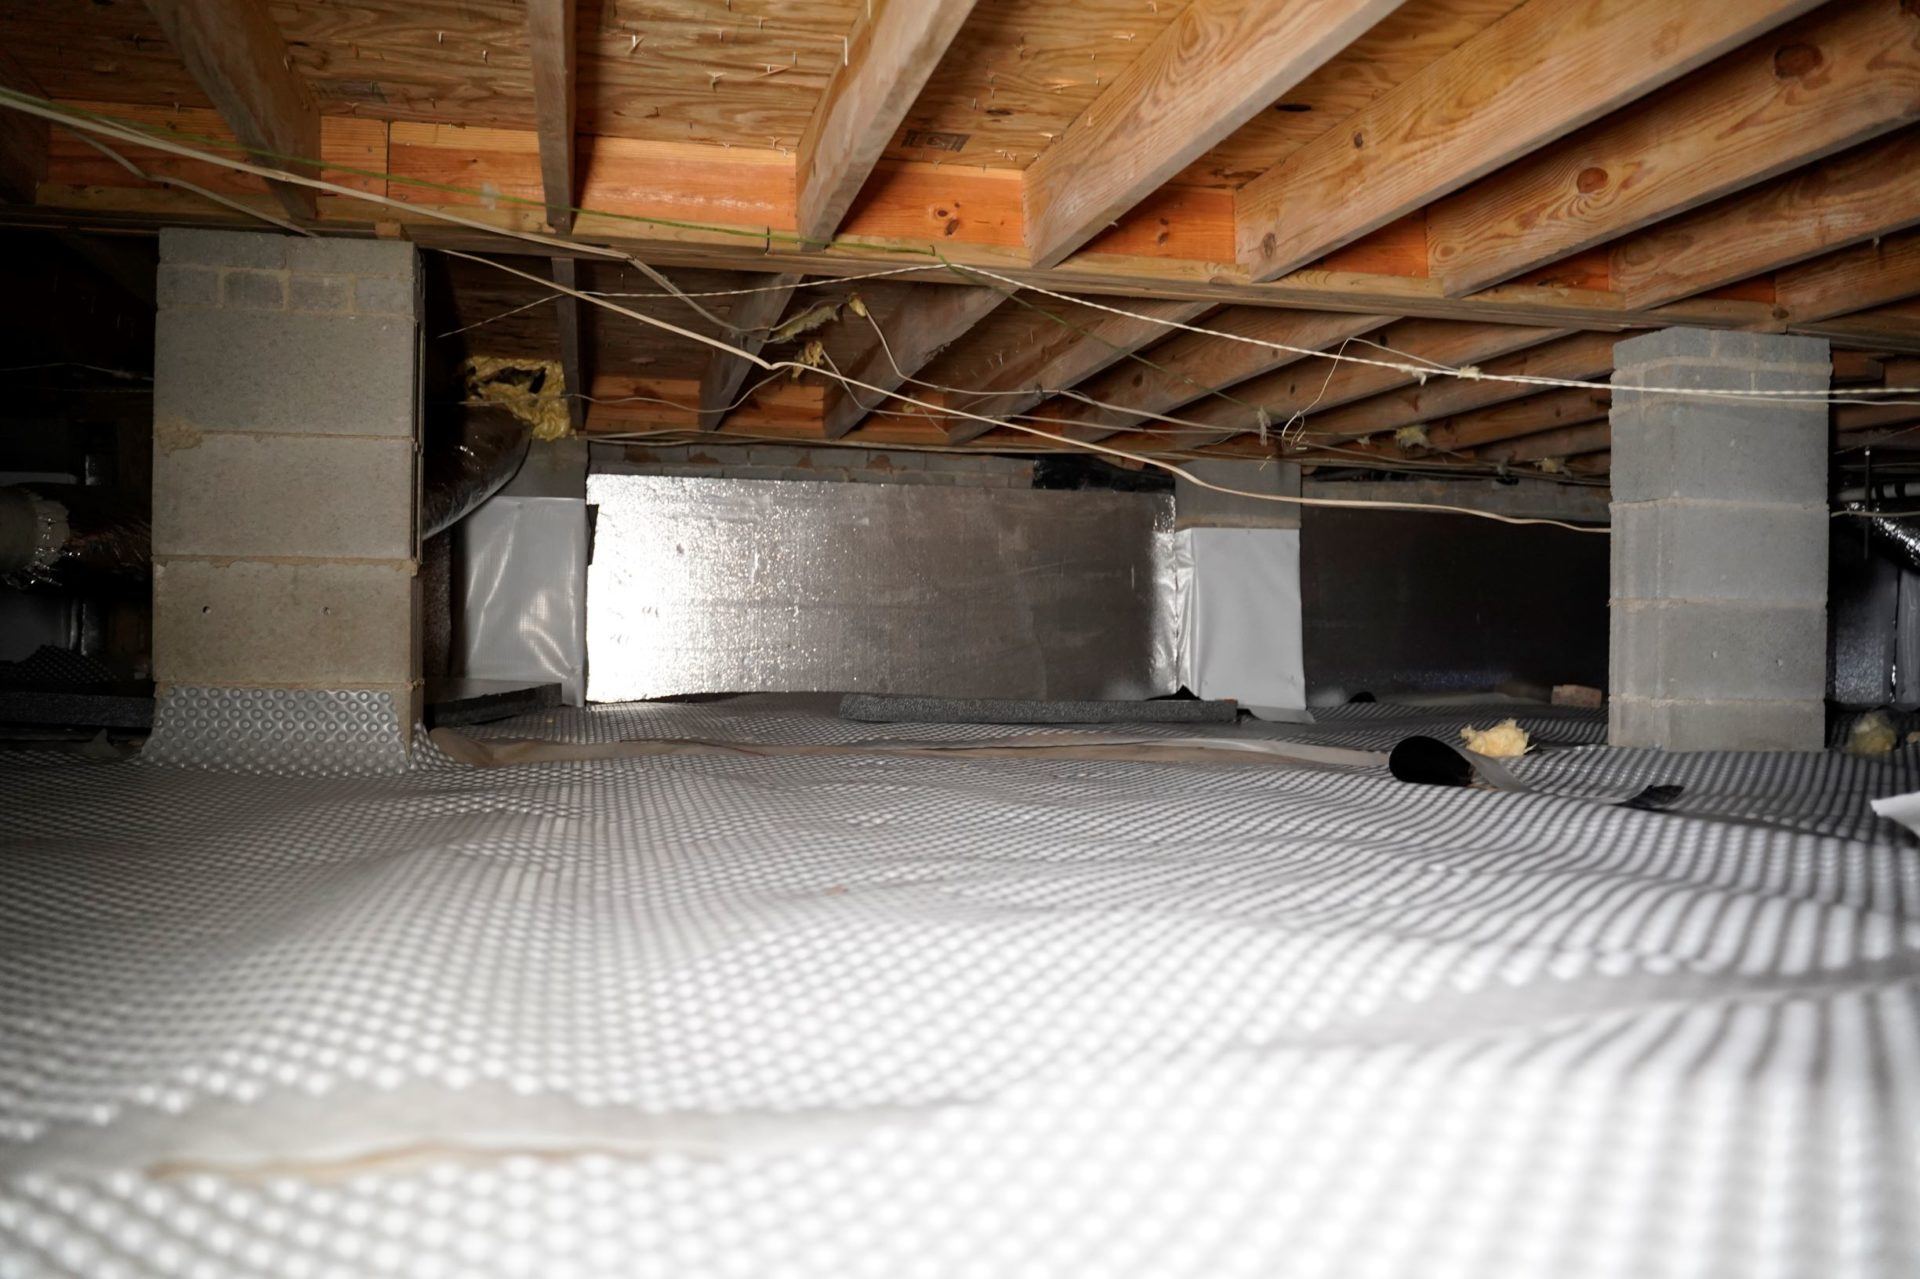 Crawl space with vapor barrier